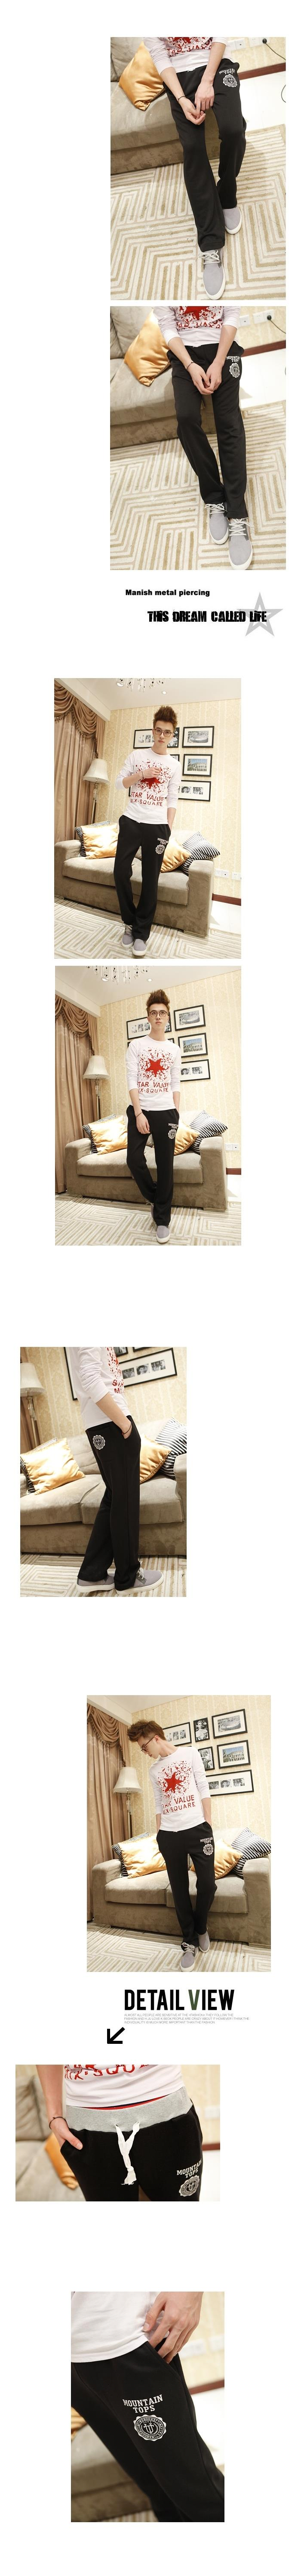 MS0050D New Korean Men's Casual Sports Trousers